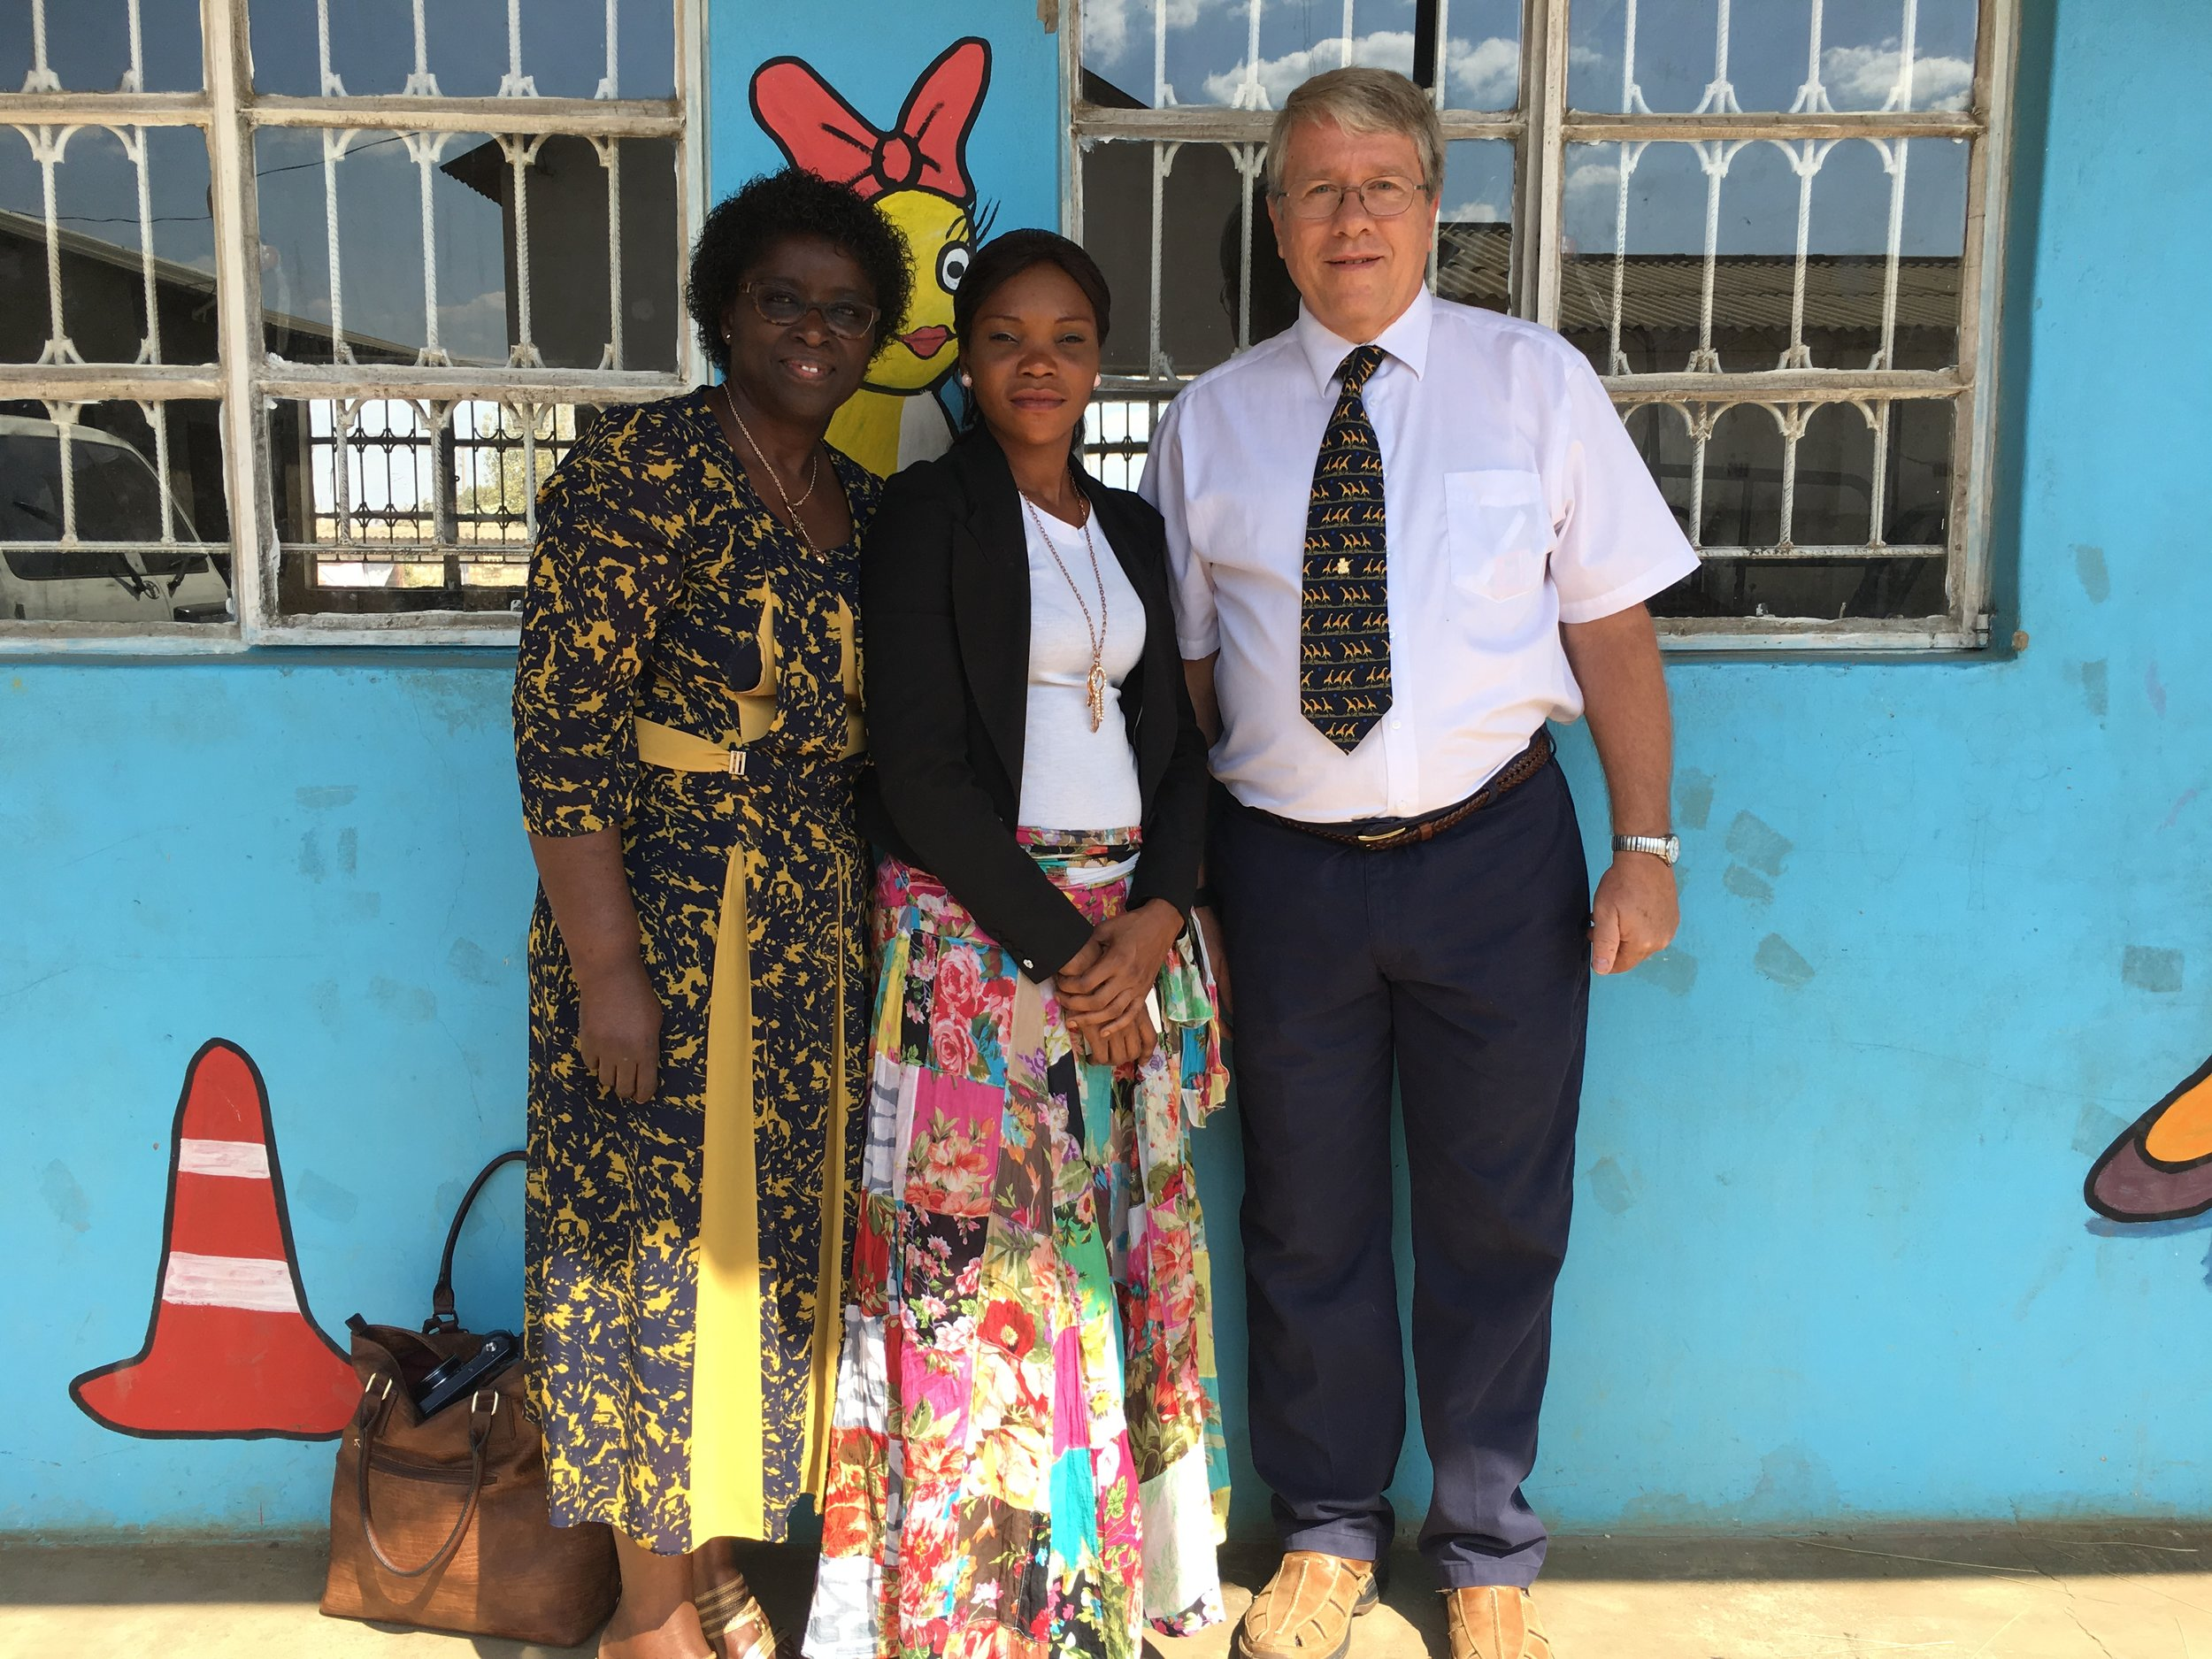 CCAP Zambia community school leader with Ebralie Mwizerwa and Frank Dimmock